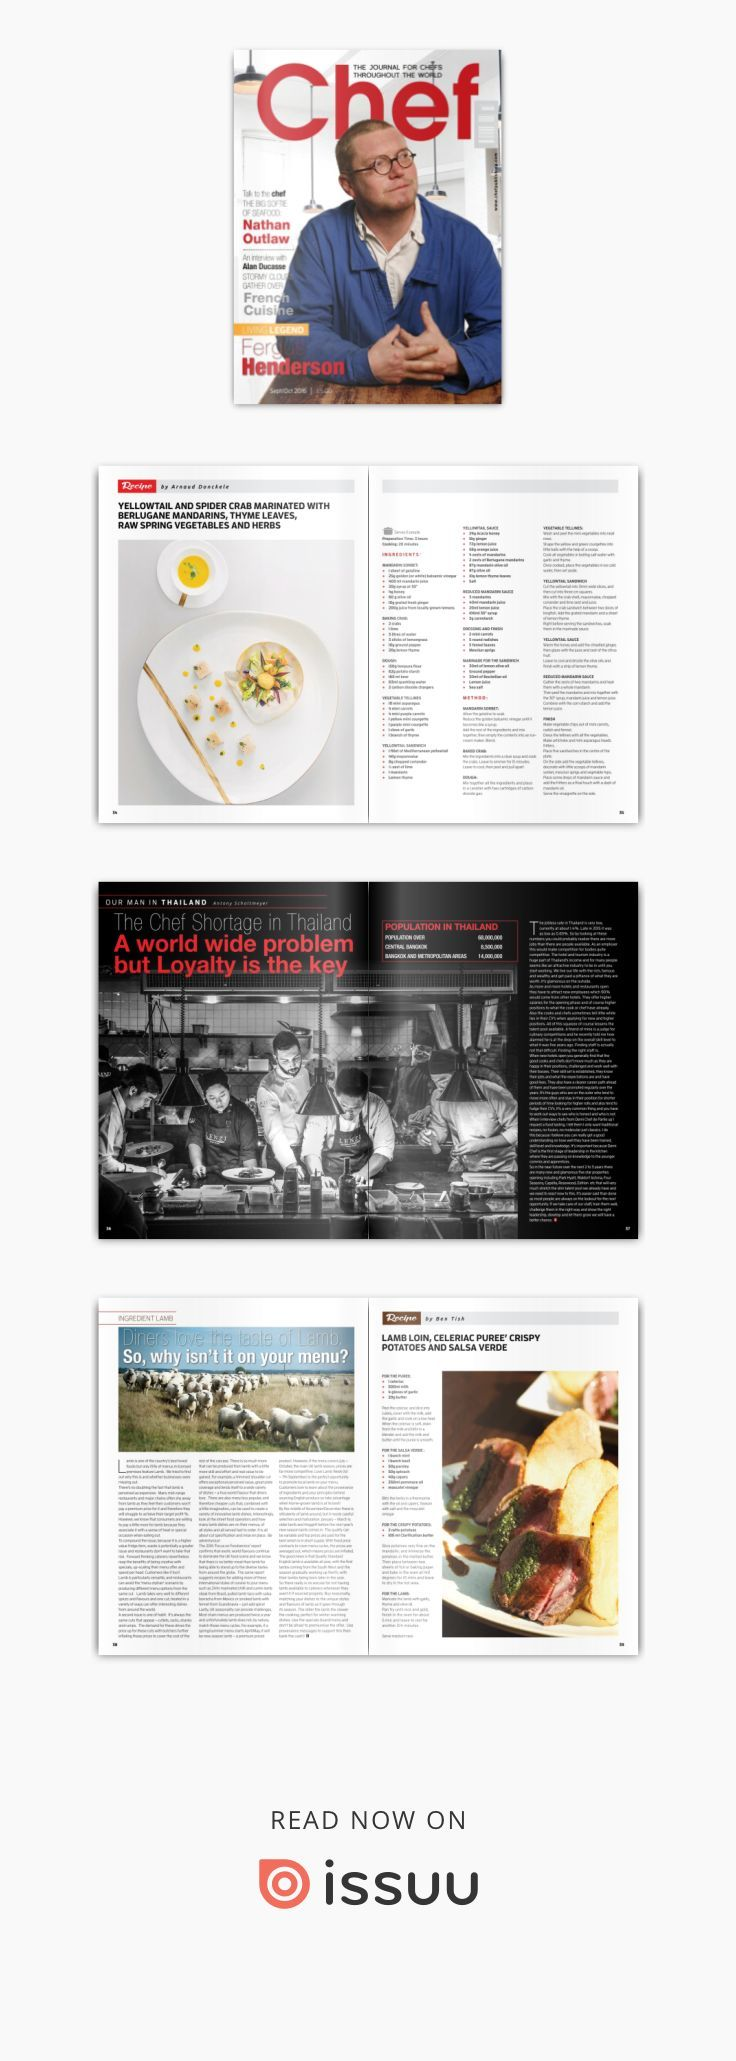 Chef Sept/Oct  The Journal for Chefs throughout the World. In this issue we interview Alan Ducasse as the figurehead of Gout De France. The living legend is the amazing Chef Fergus Henderson and our Talk to the Chef interview is with Nathan Outlaw. Plus many more features news and recipes